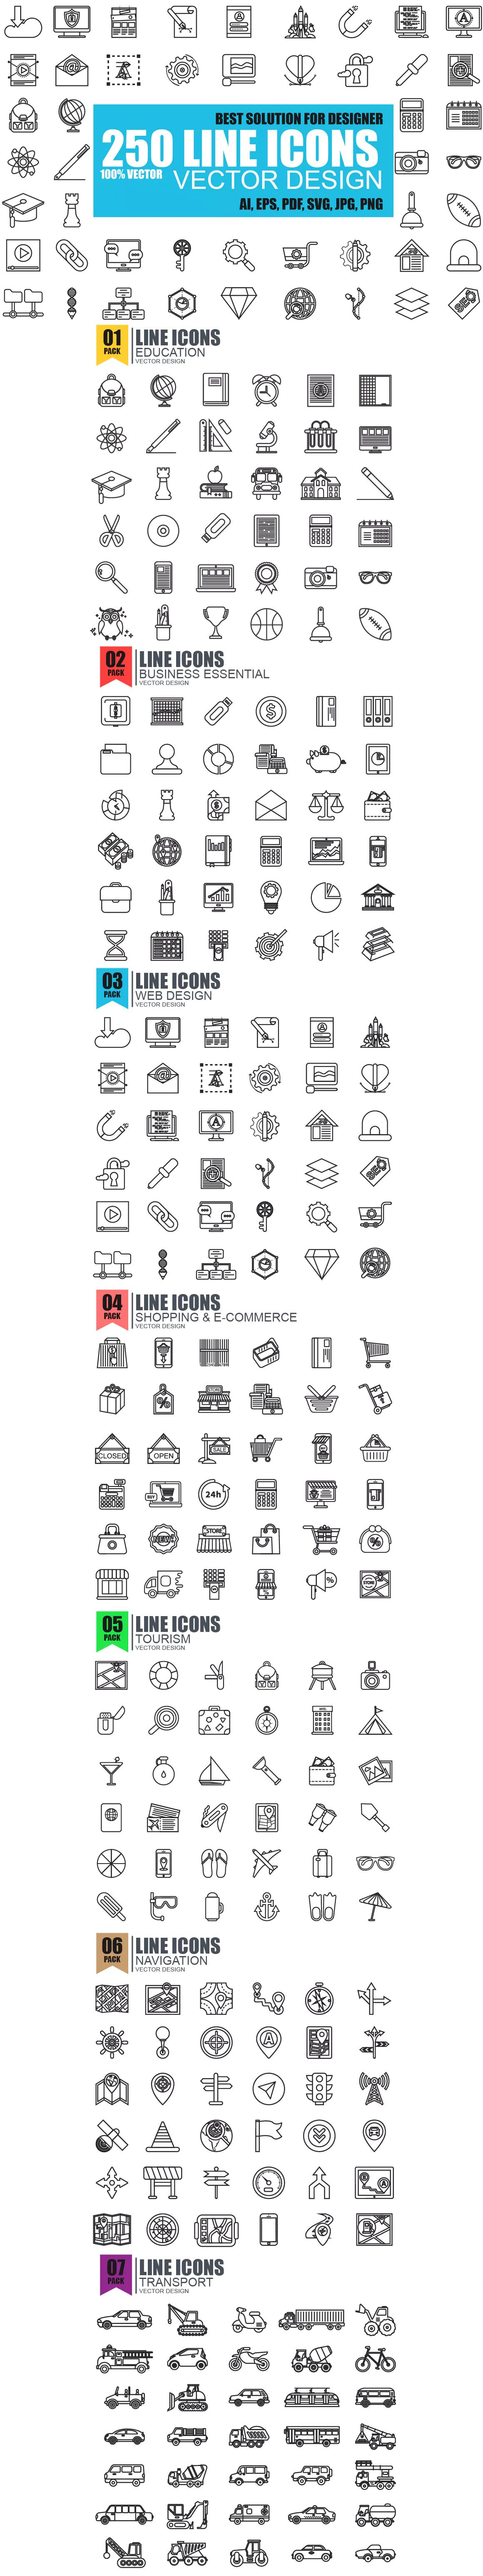 Simple Line Icons AI, EPS | Icons | Line icon, Simple lines